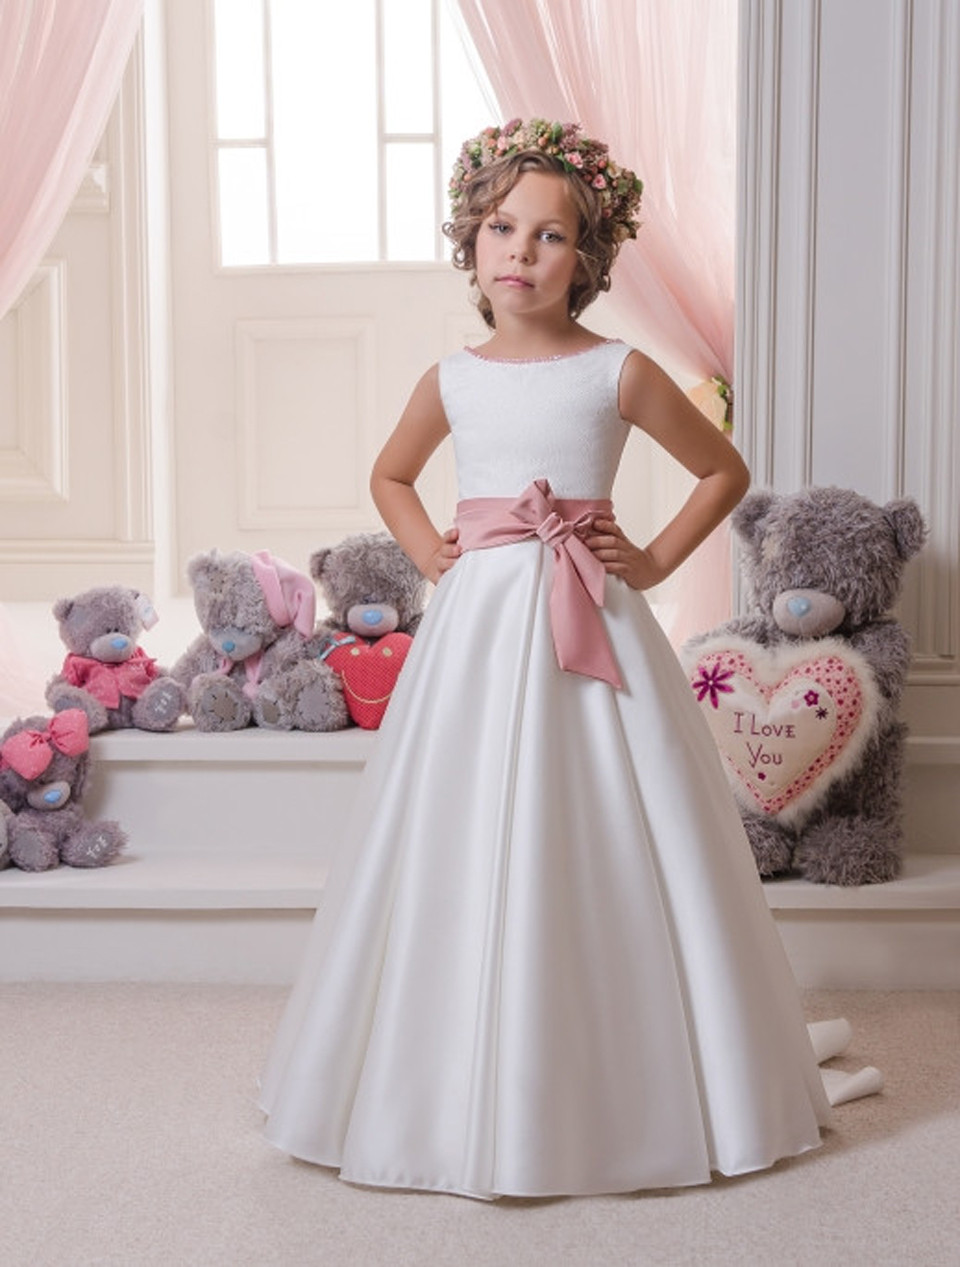 Hot 2019   Flower     Girl     Dresses   For Weddings A-line Satin Bow Long First Communion   Dresses   Little   Girl